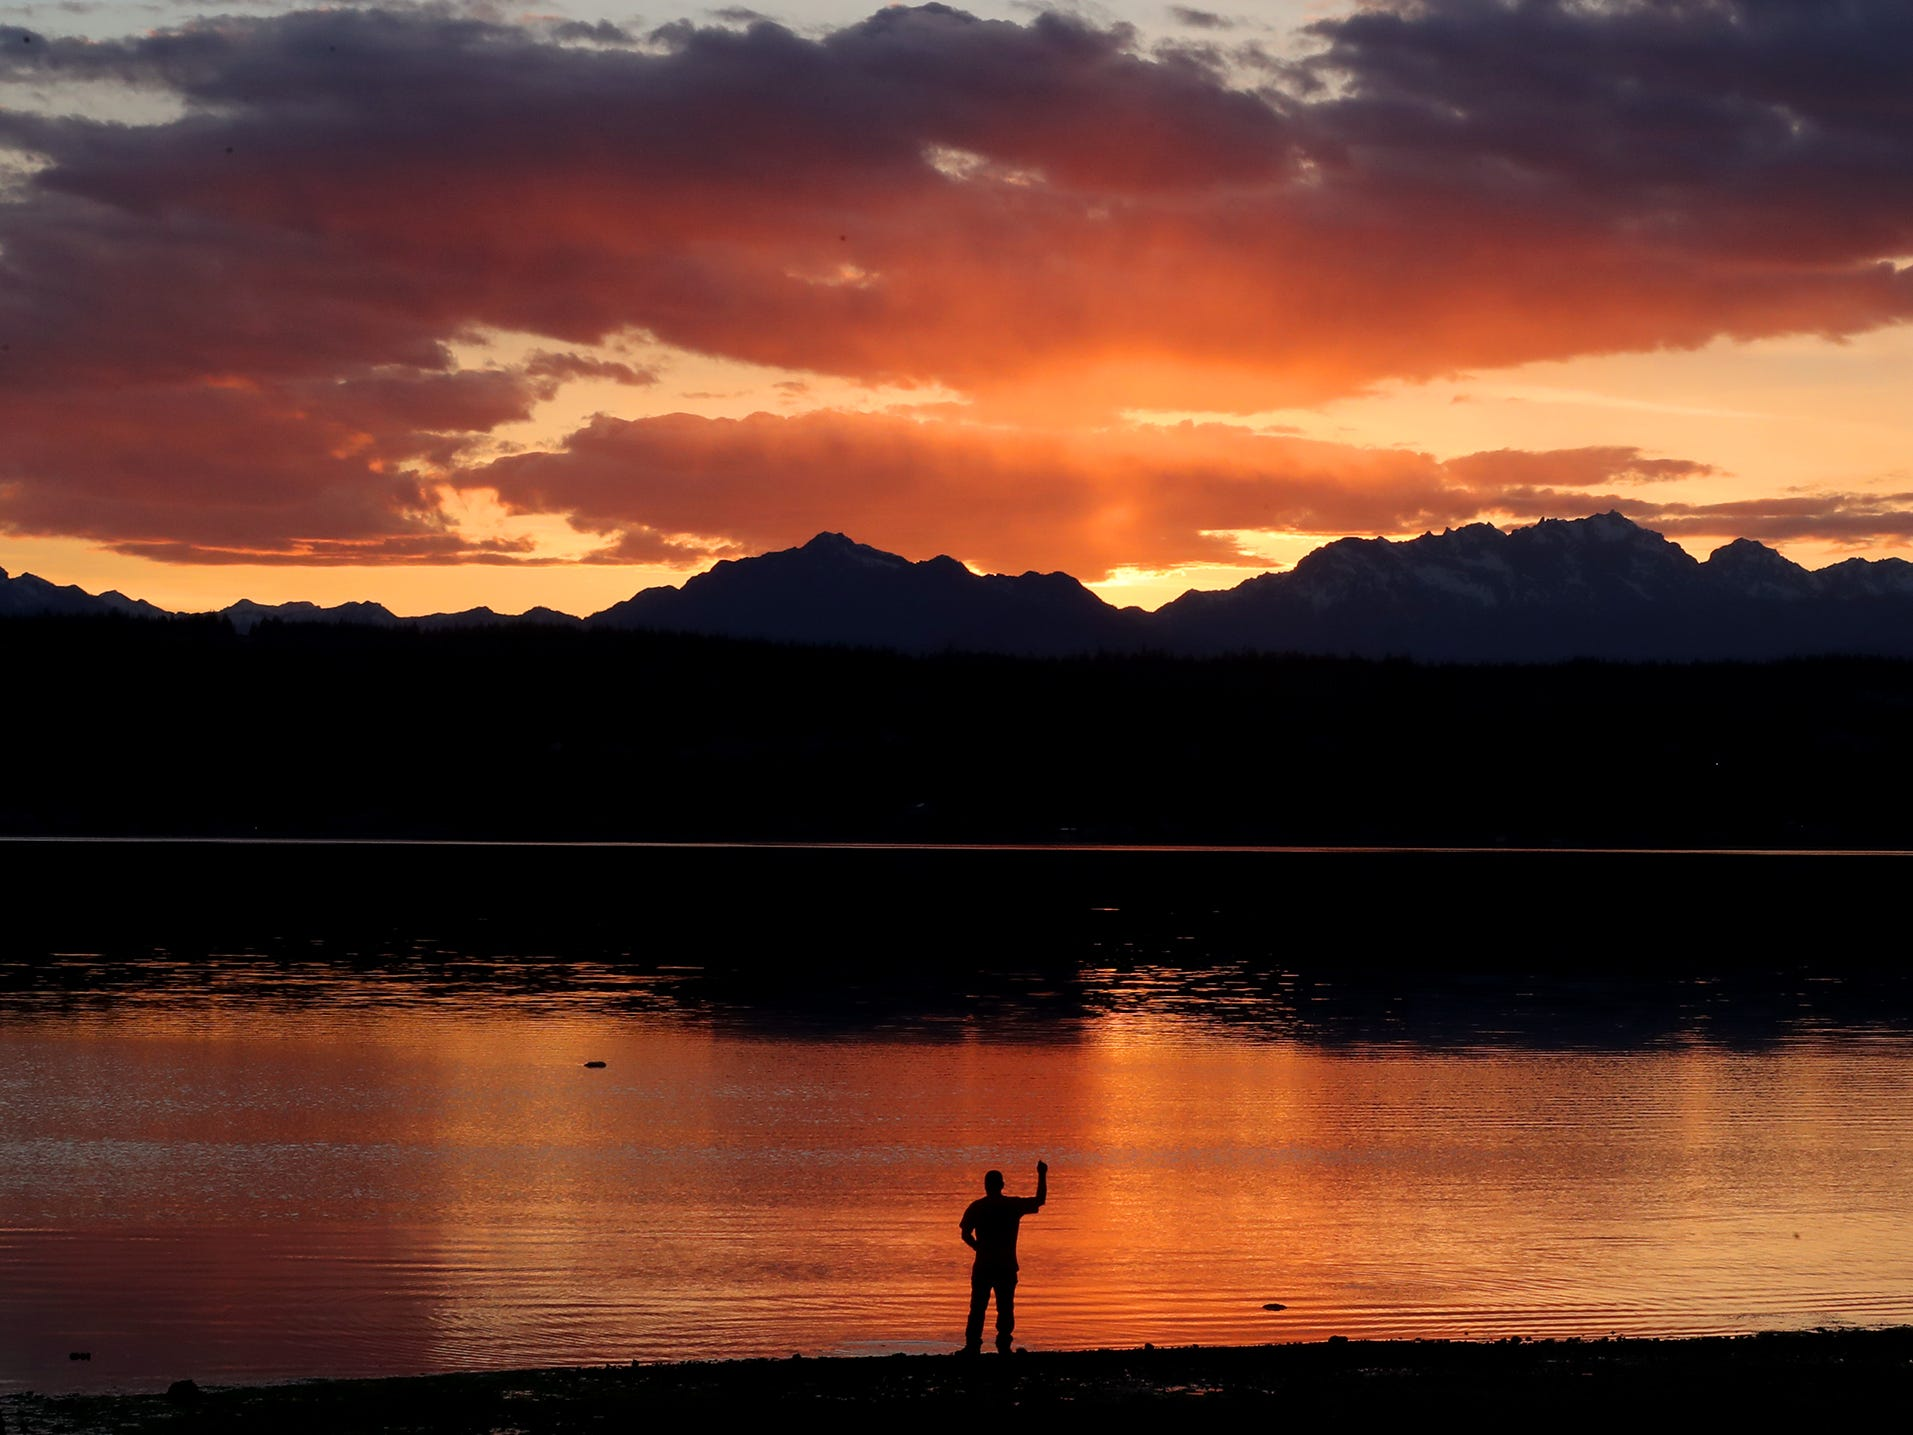 John Bart tosses a rock into the water as he skips stones during sunset at the Tracyton Boat Launch on Tuesday. Temperatures are forecast to reach into the 70s through the weekend.